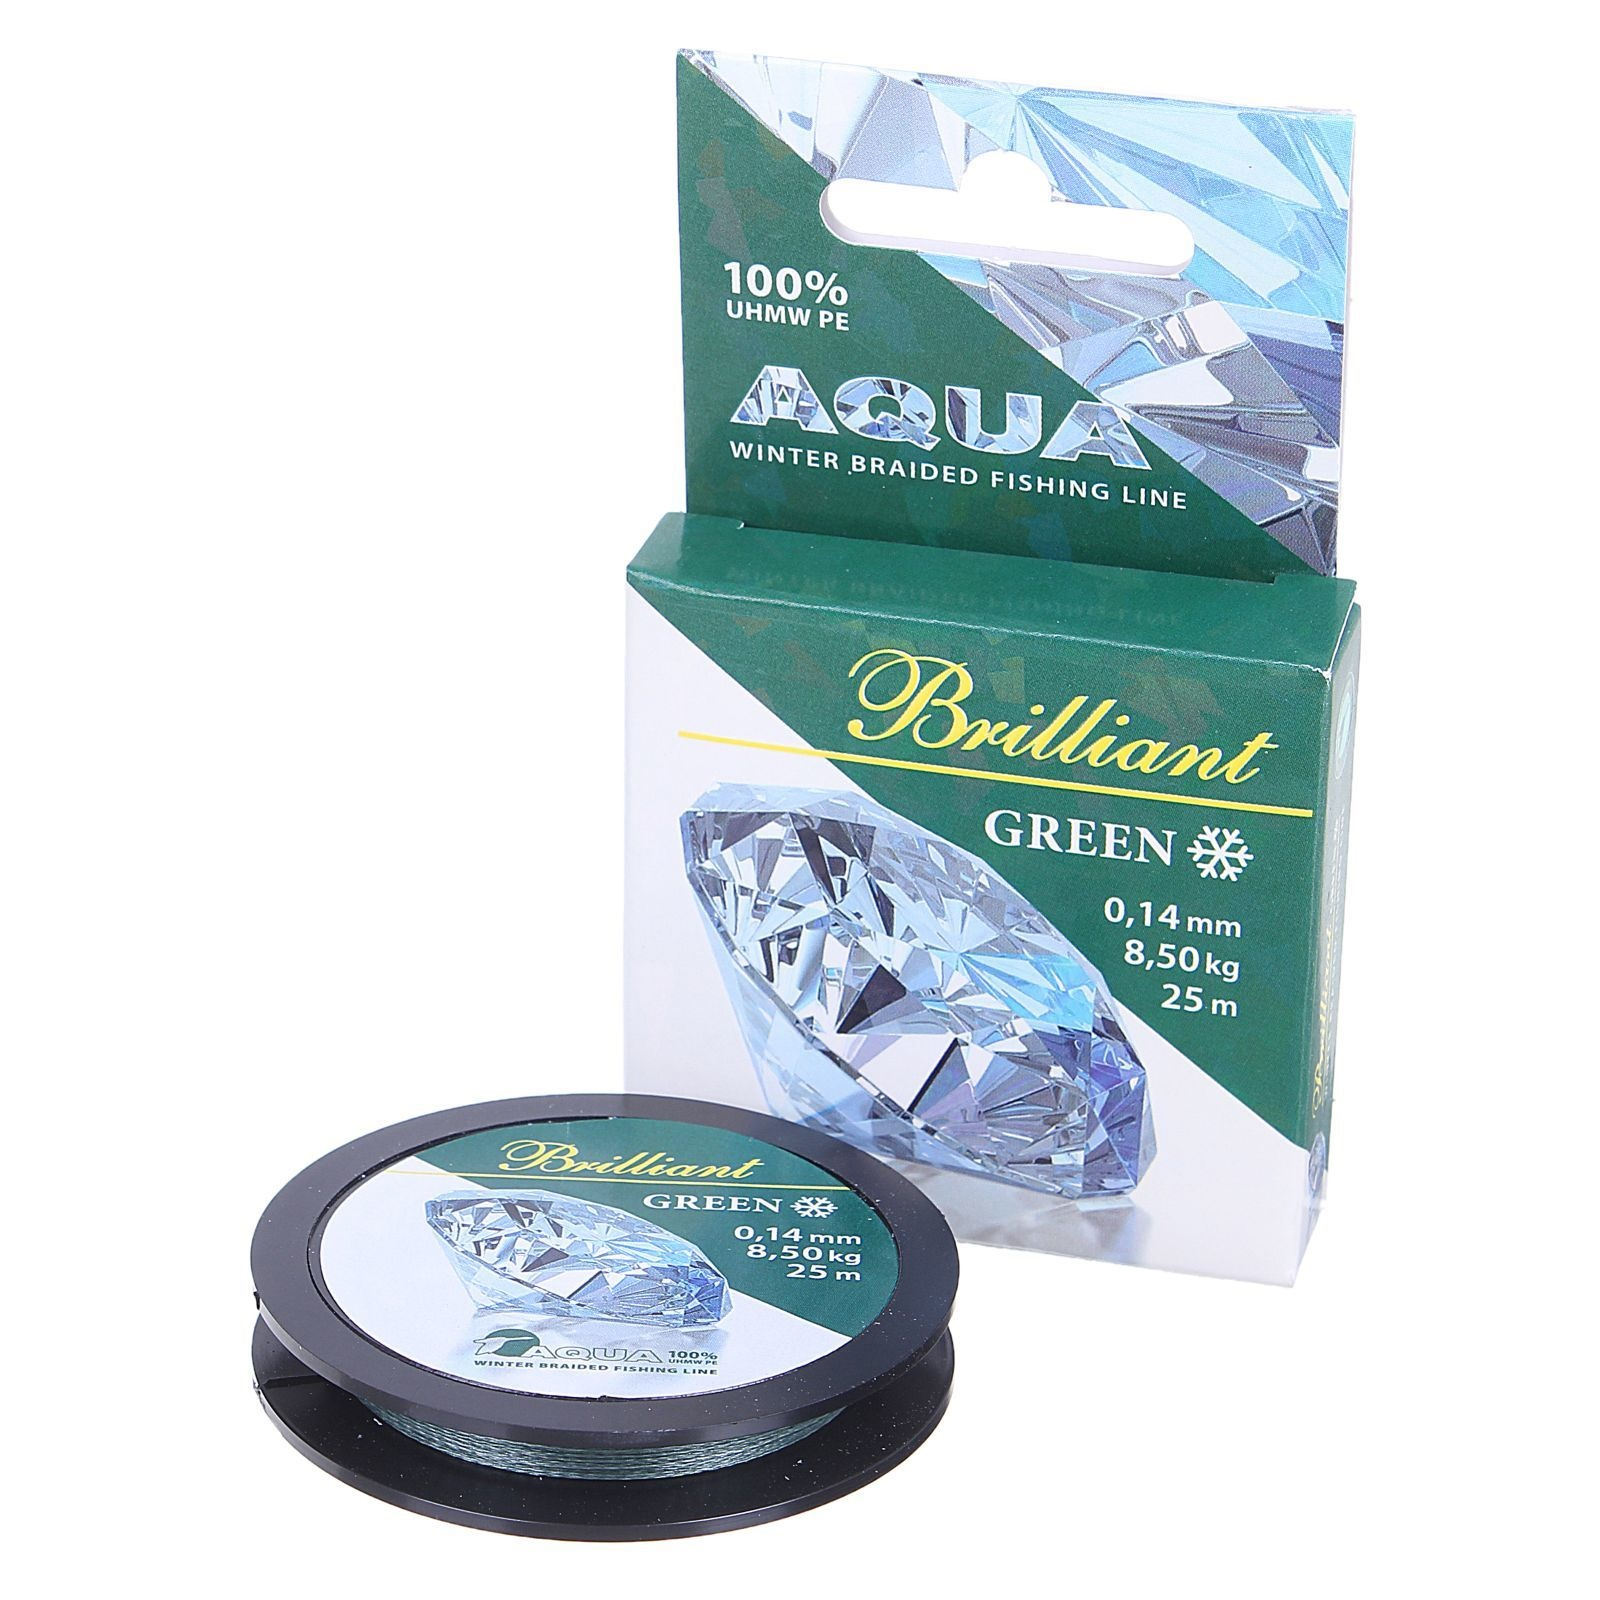 Плетеный шнур AQUA Green Brilliant 25м 0,14мм зимний